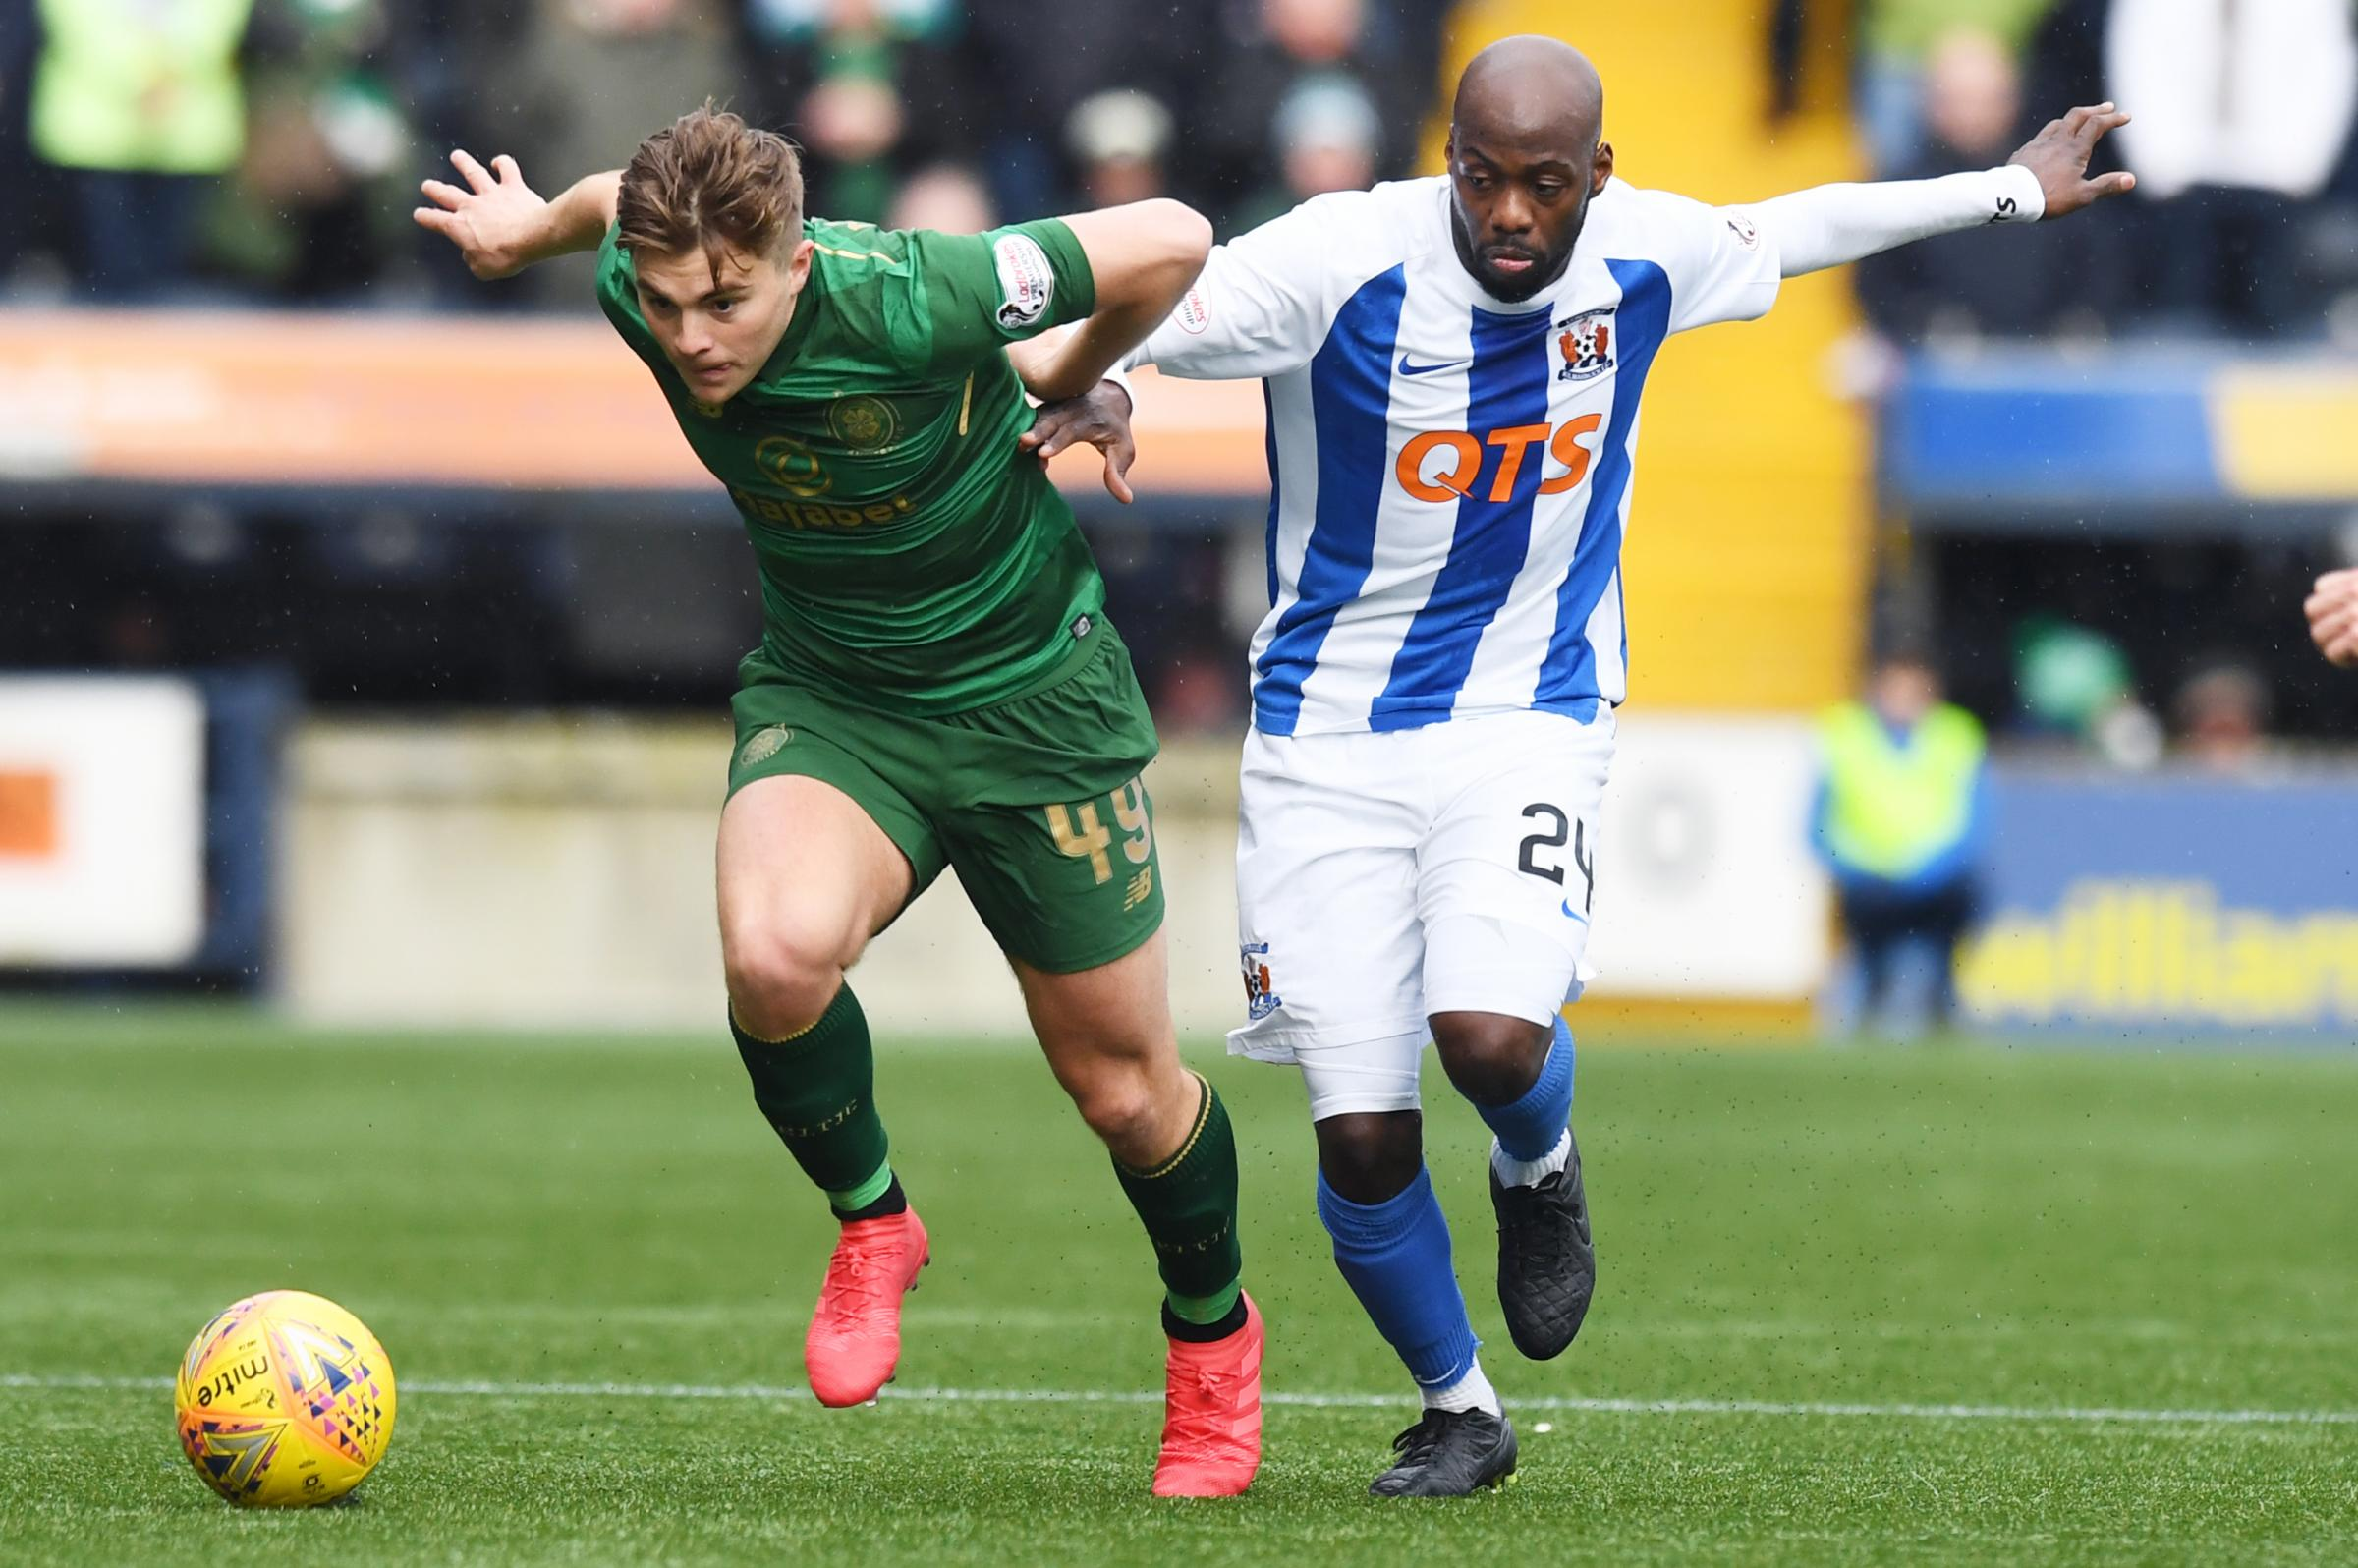 Celtic's James Forrest in action with Kilmarnock's Youssouf Mulumbu. Picture: SNS